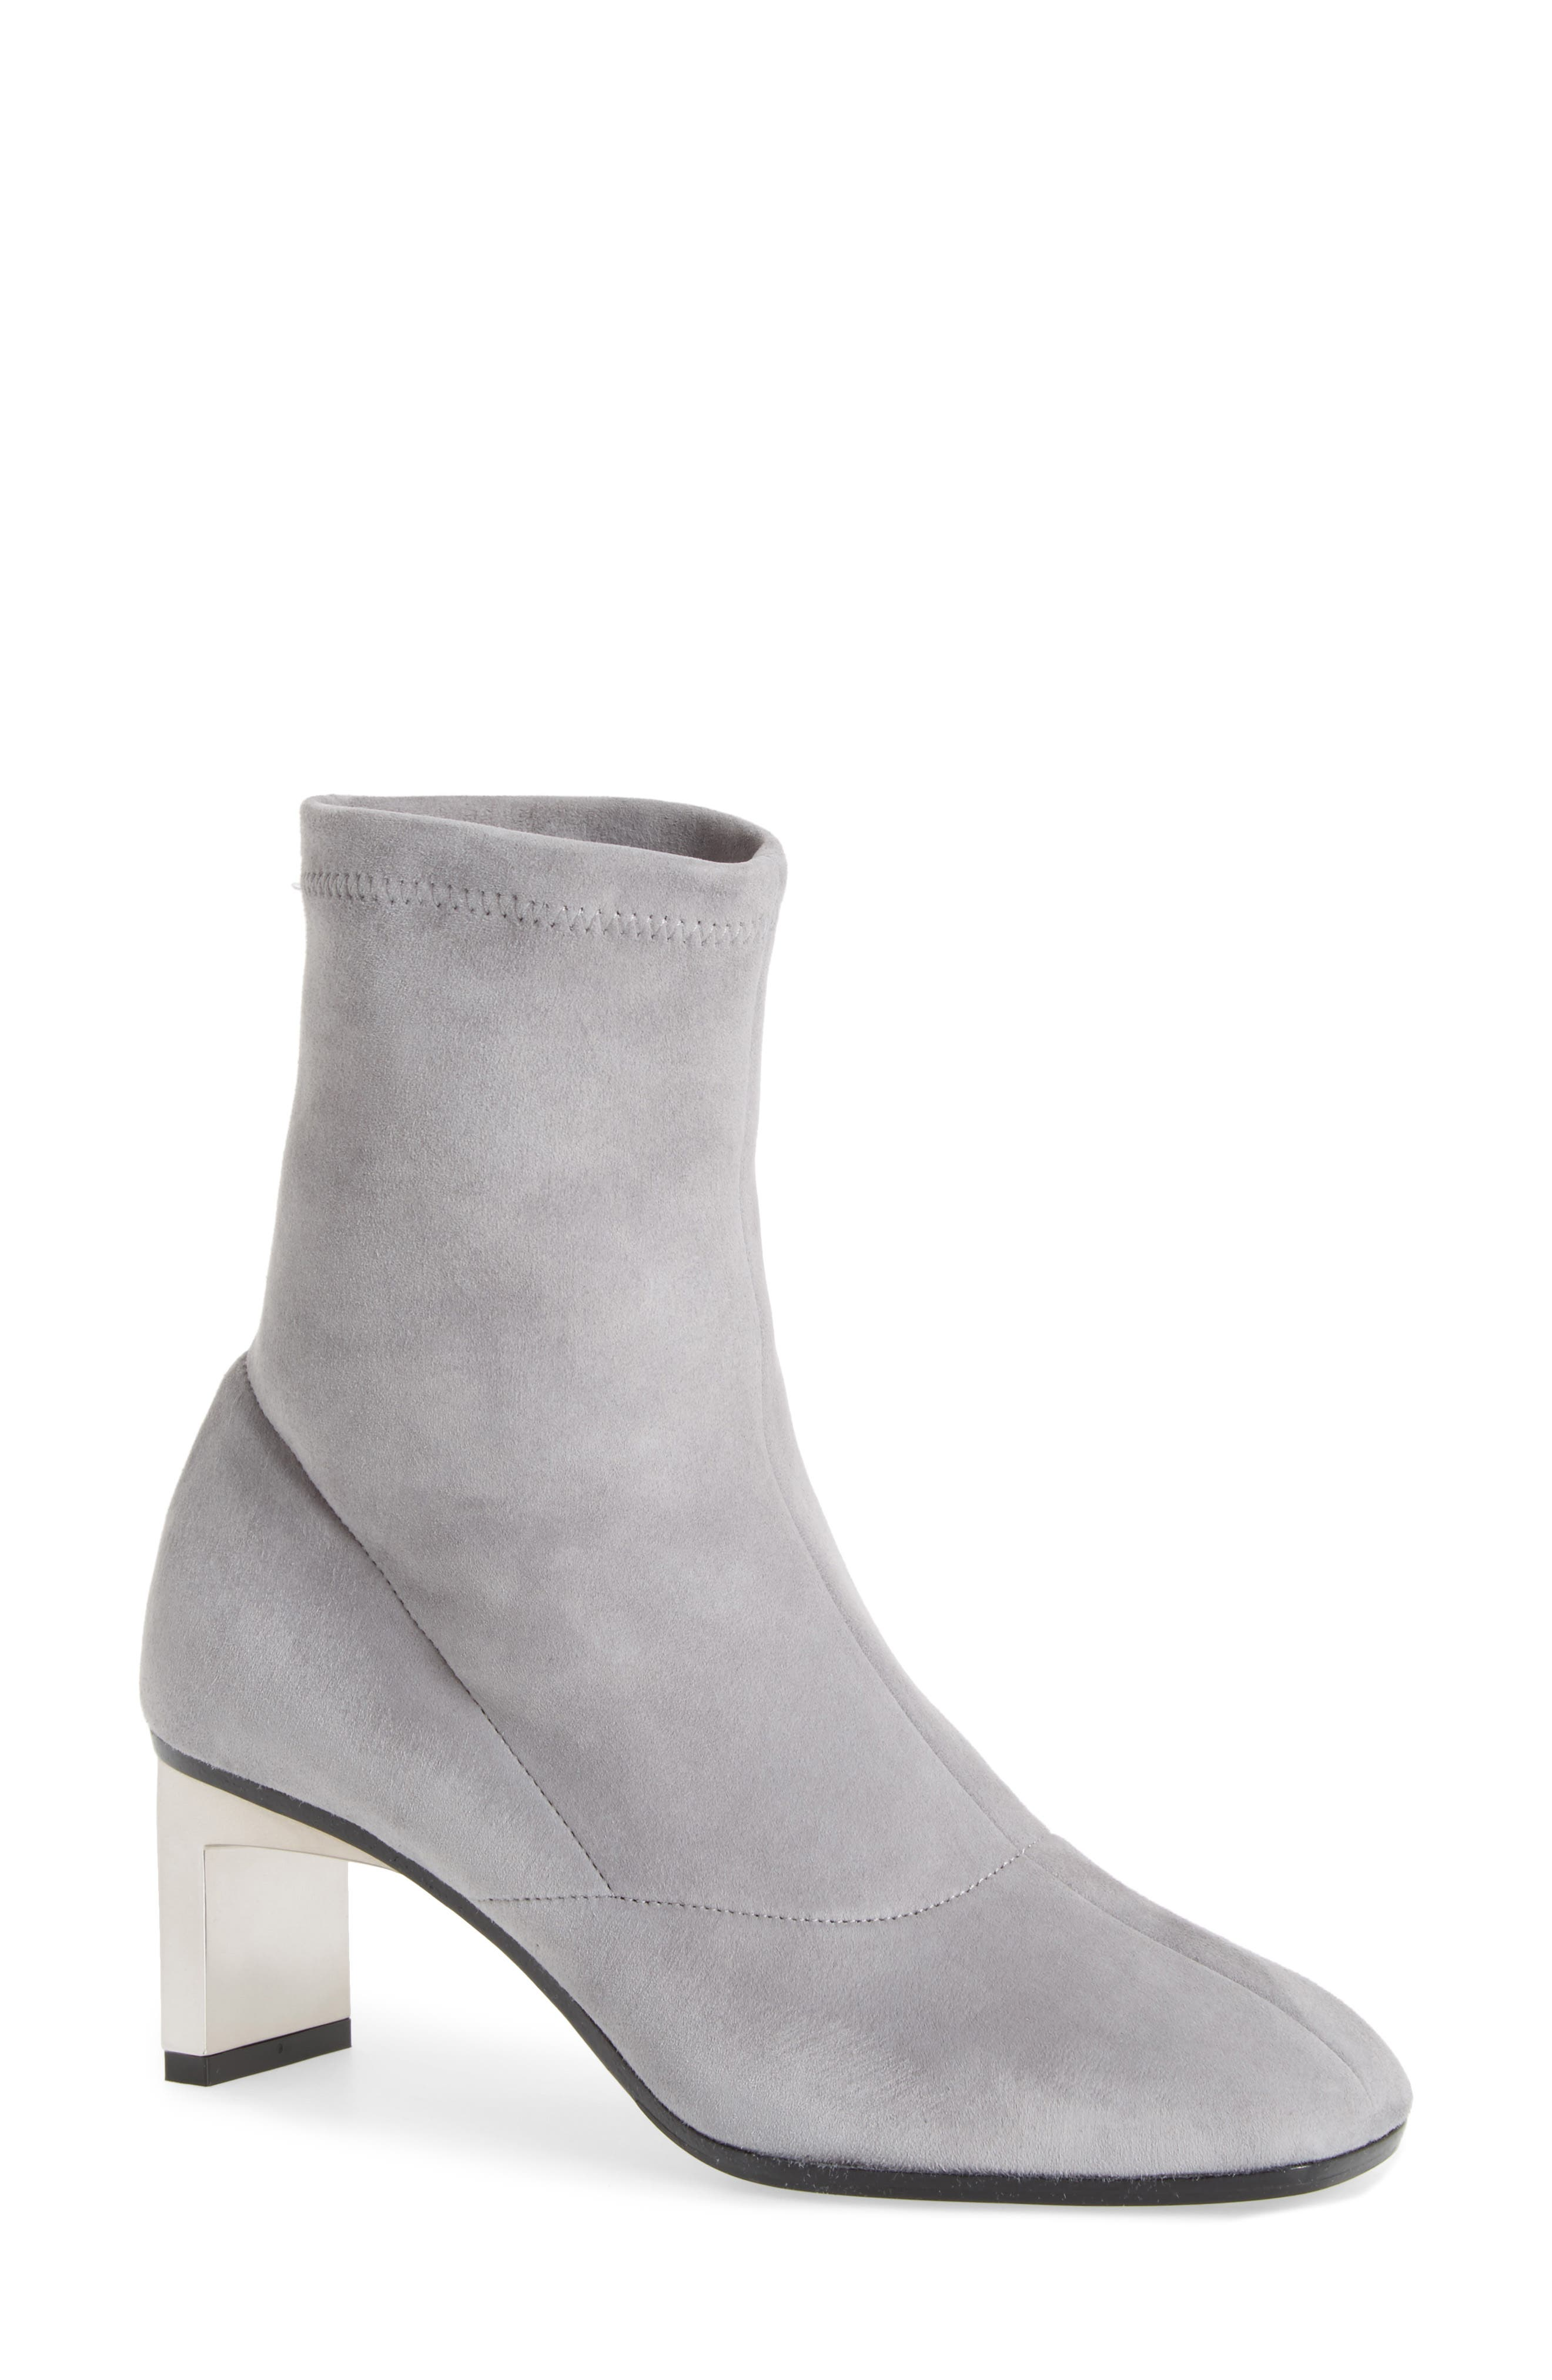 Main Image - 3.1 Phillip Lim Blade Boot (Women)